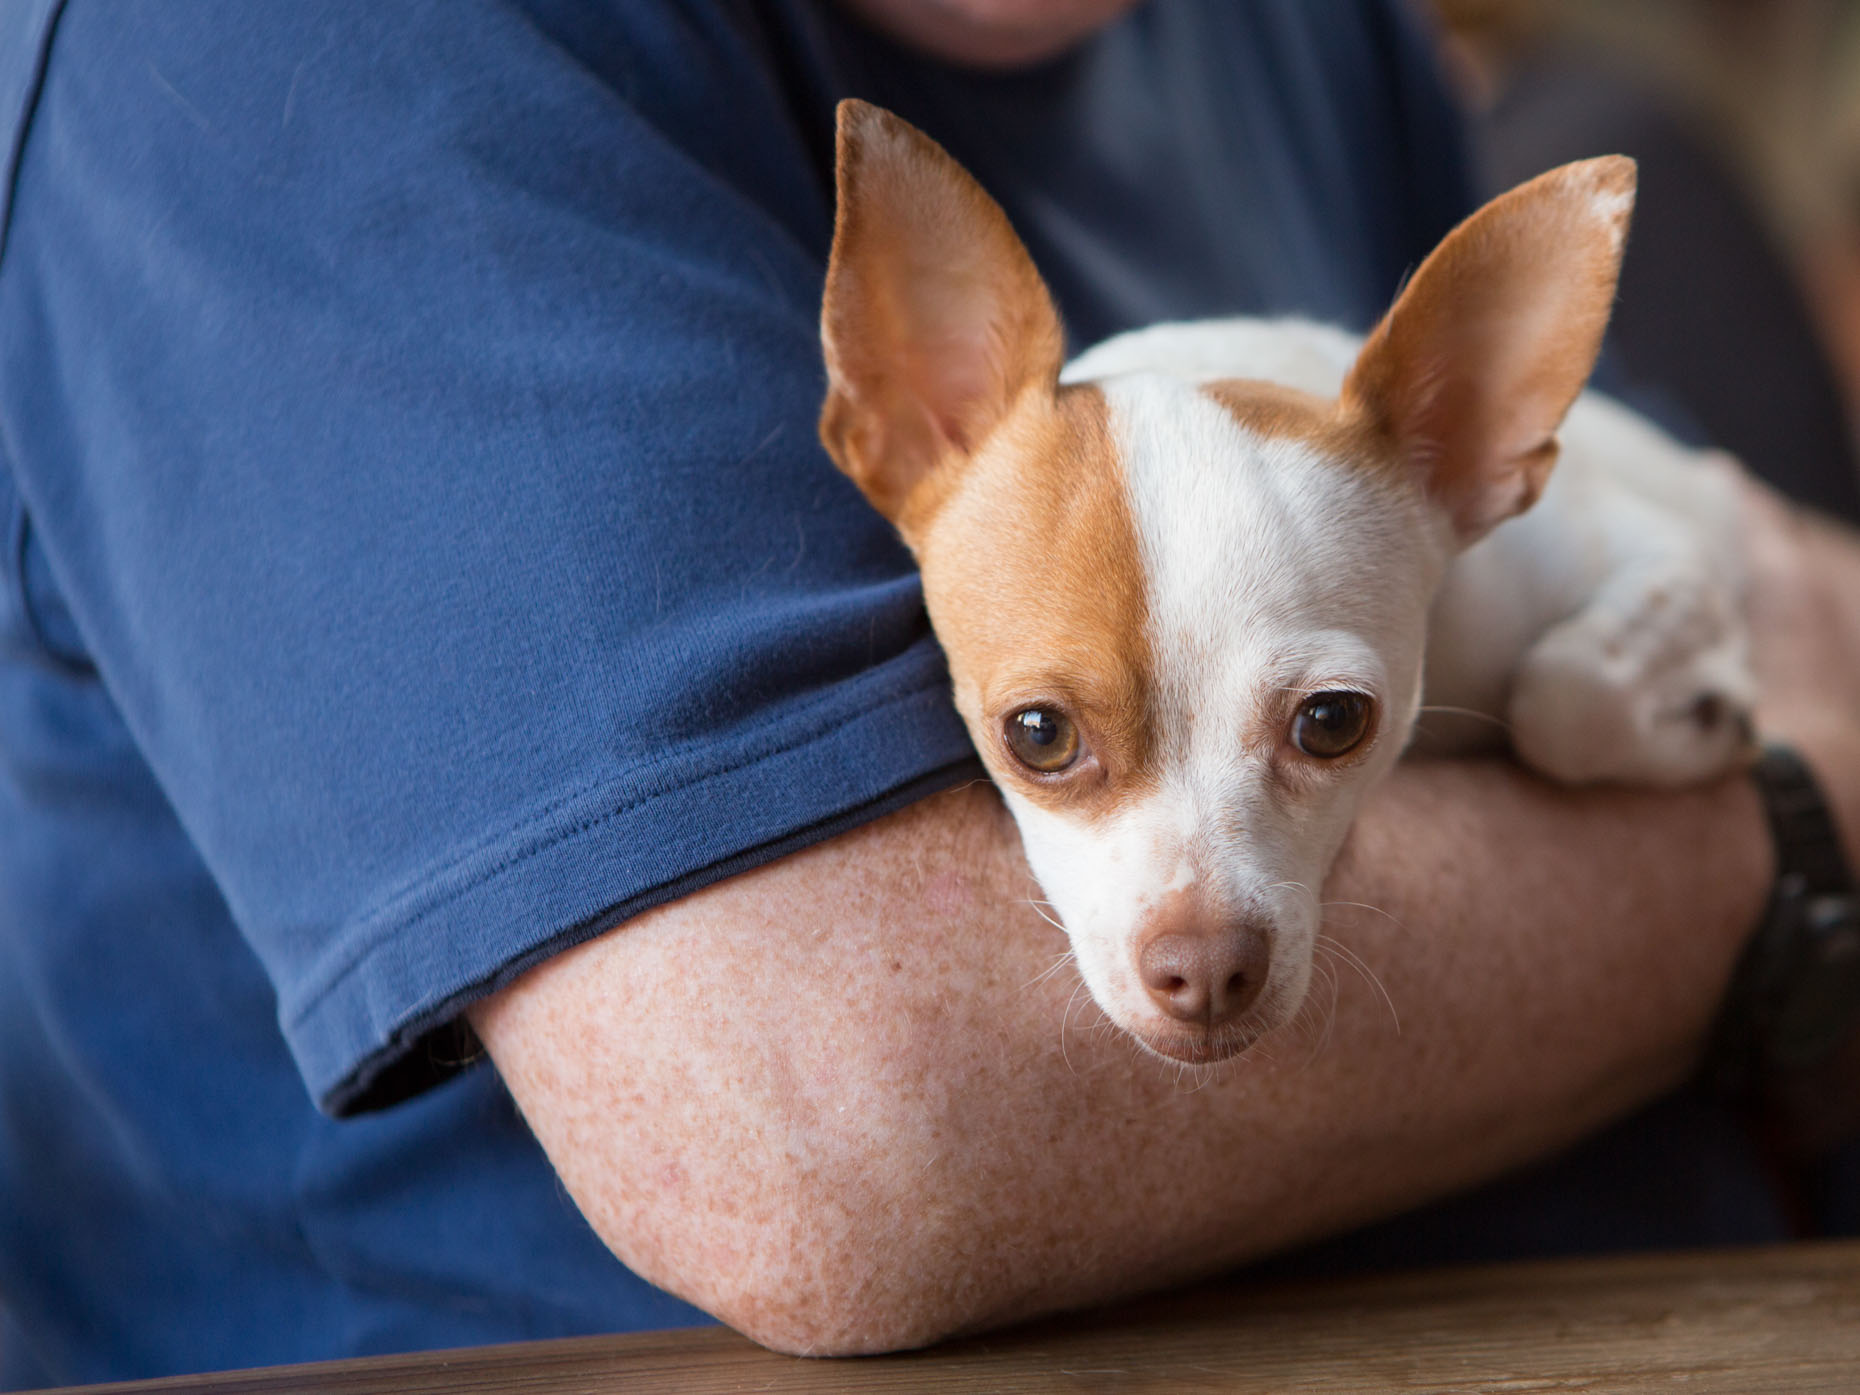 People with Pets Photography | Dog Resting on Mans Arm by Mark Rogers